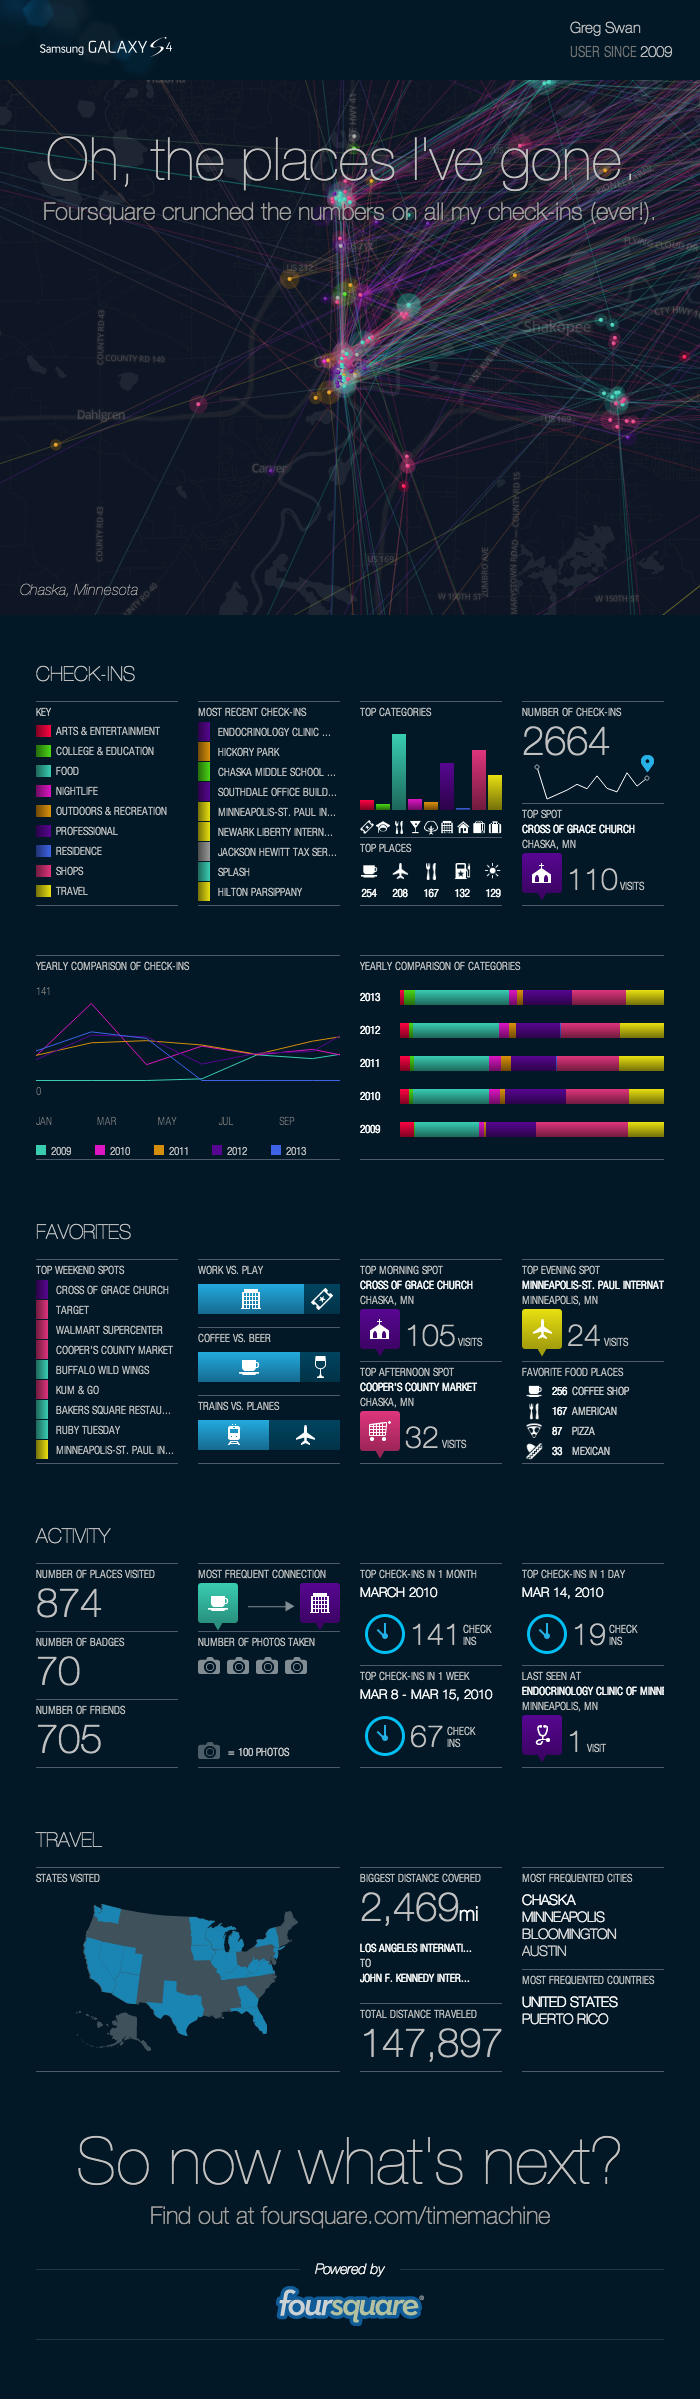 foursquare infographic greg swan